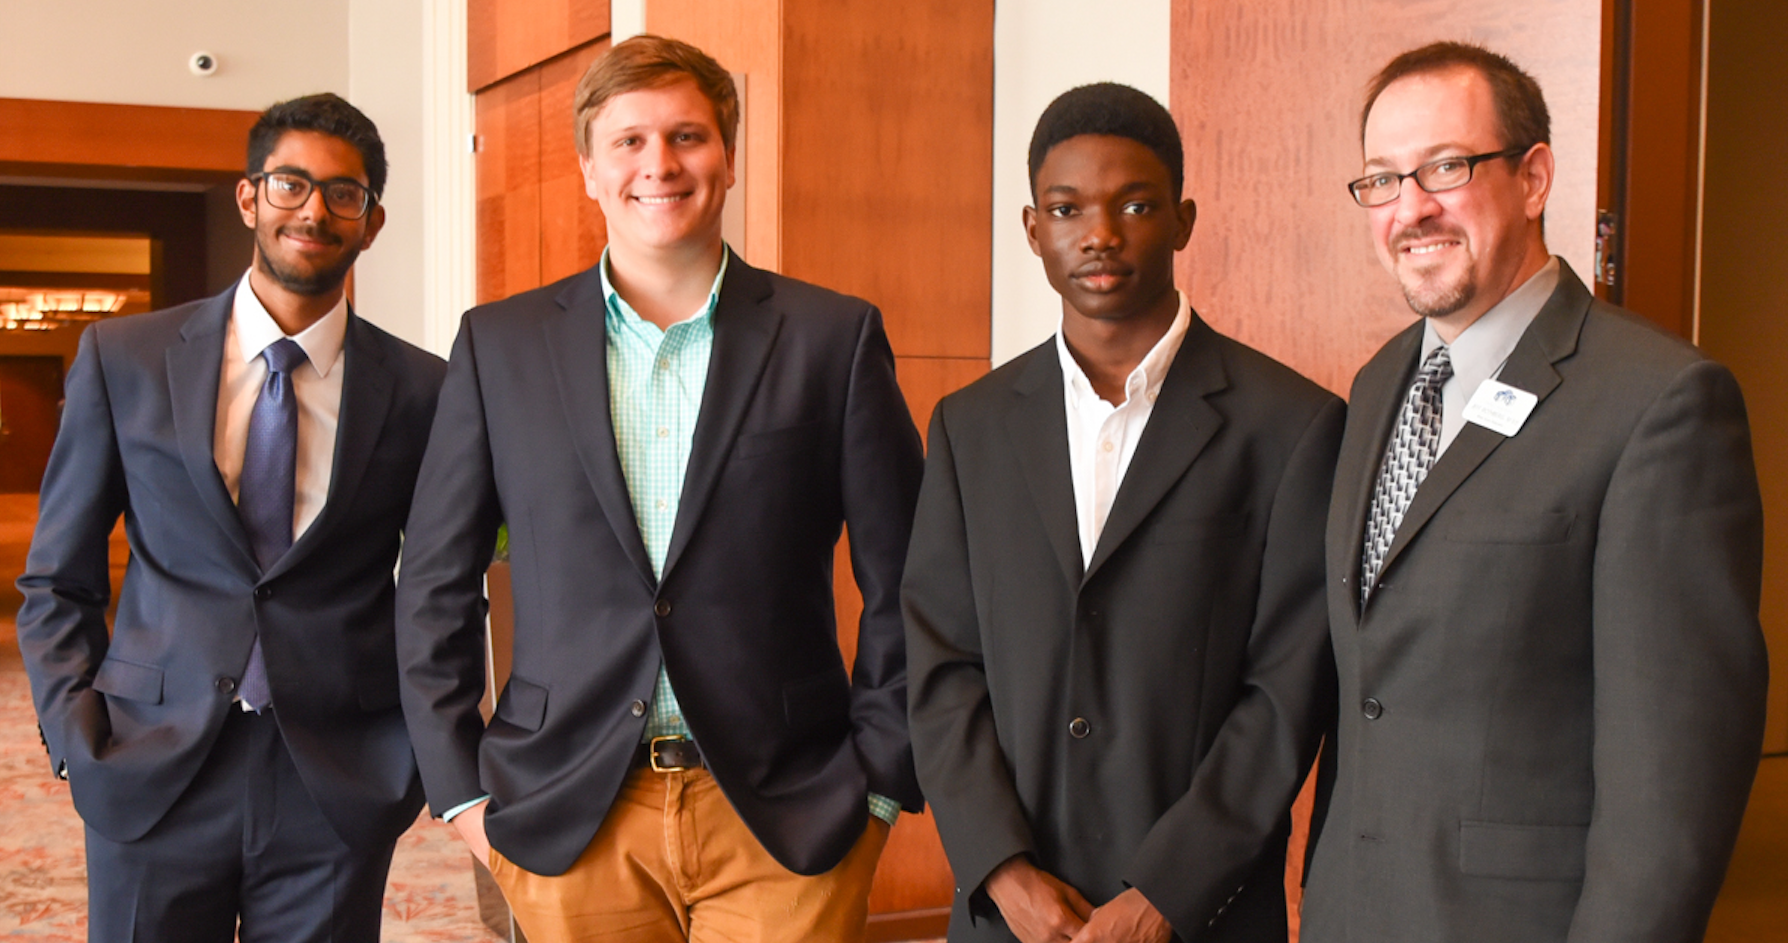 L-R: Myers Park High students Manpreet Singh, William Miller, and Theodore White - CHSNC Educator, Jeff Rothberg (Courtesy of CHSNC)